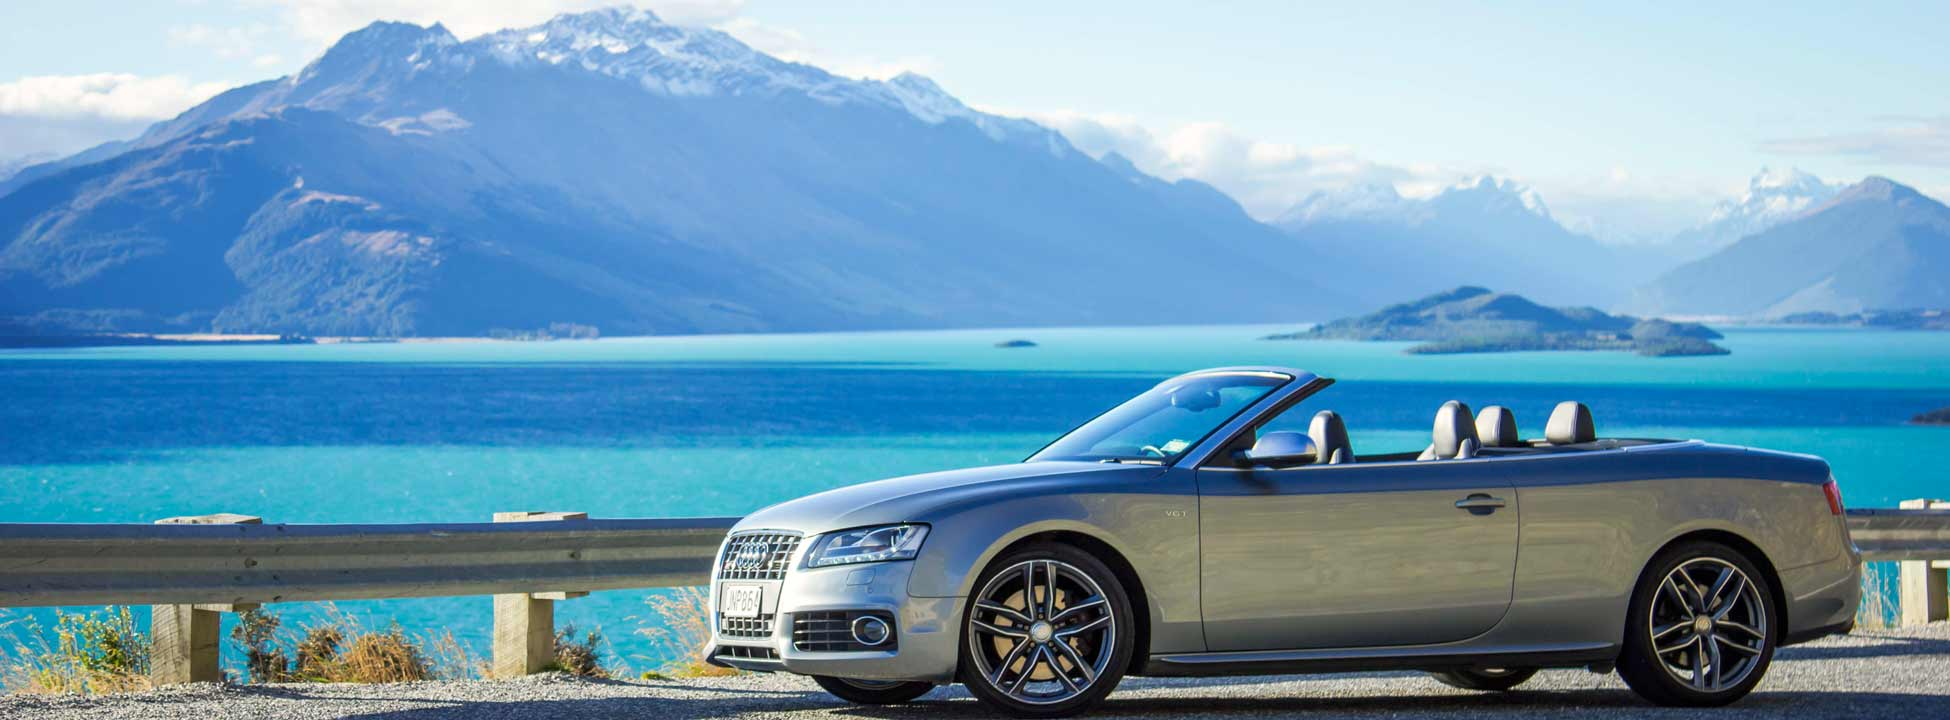 luxury car hire auckland  Hire Luxury Rental Cars in New Zealand - Luxury Car Rental New Zealand